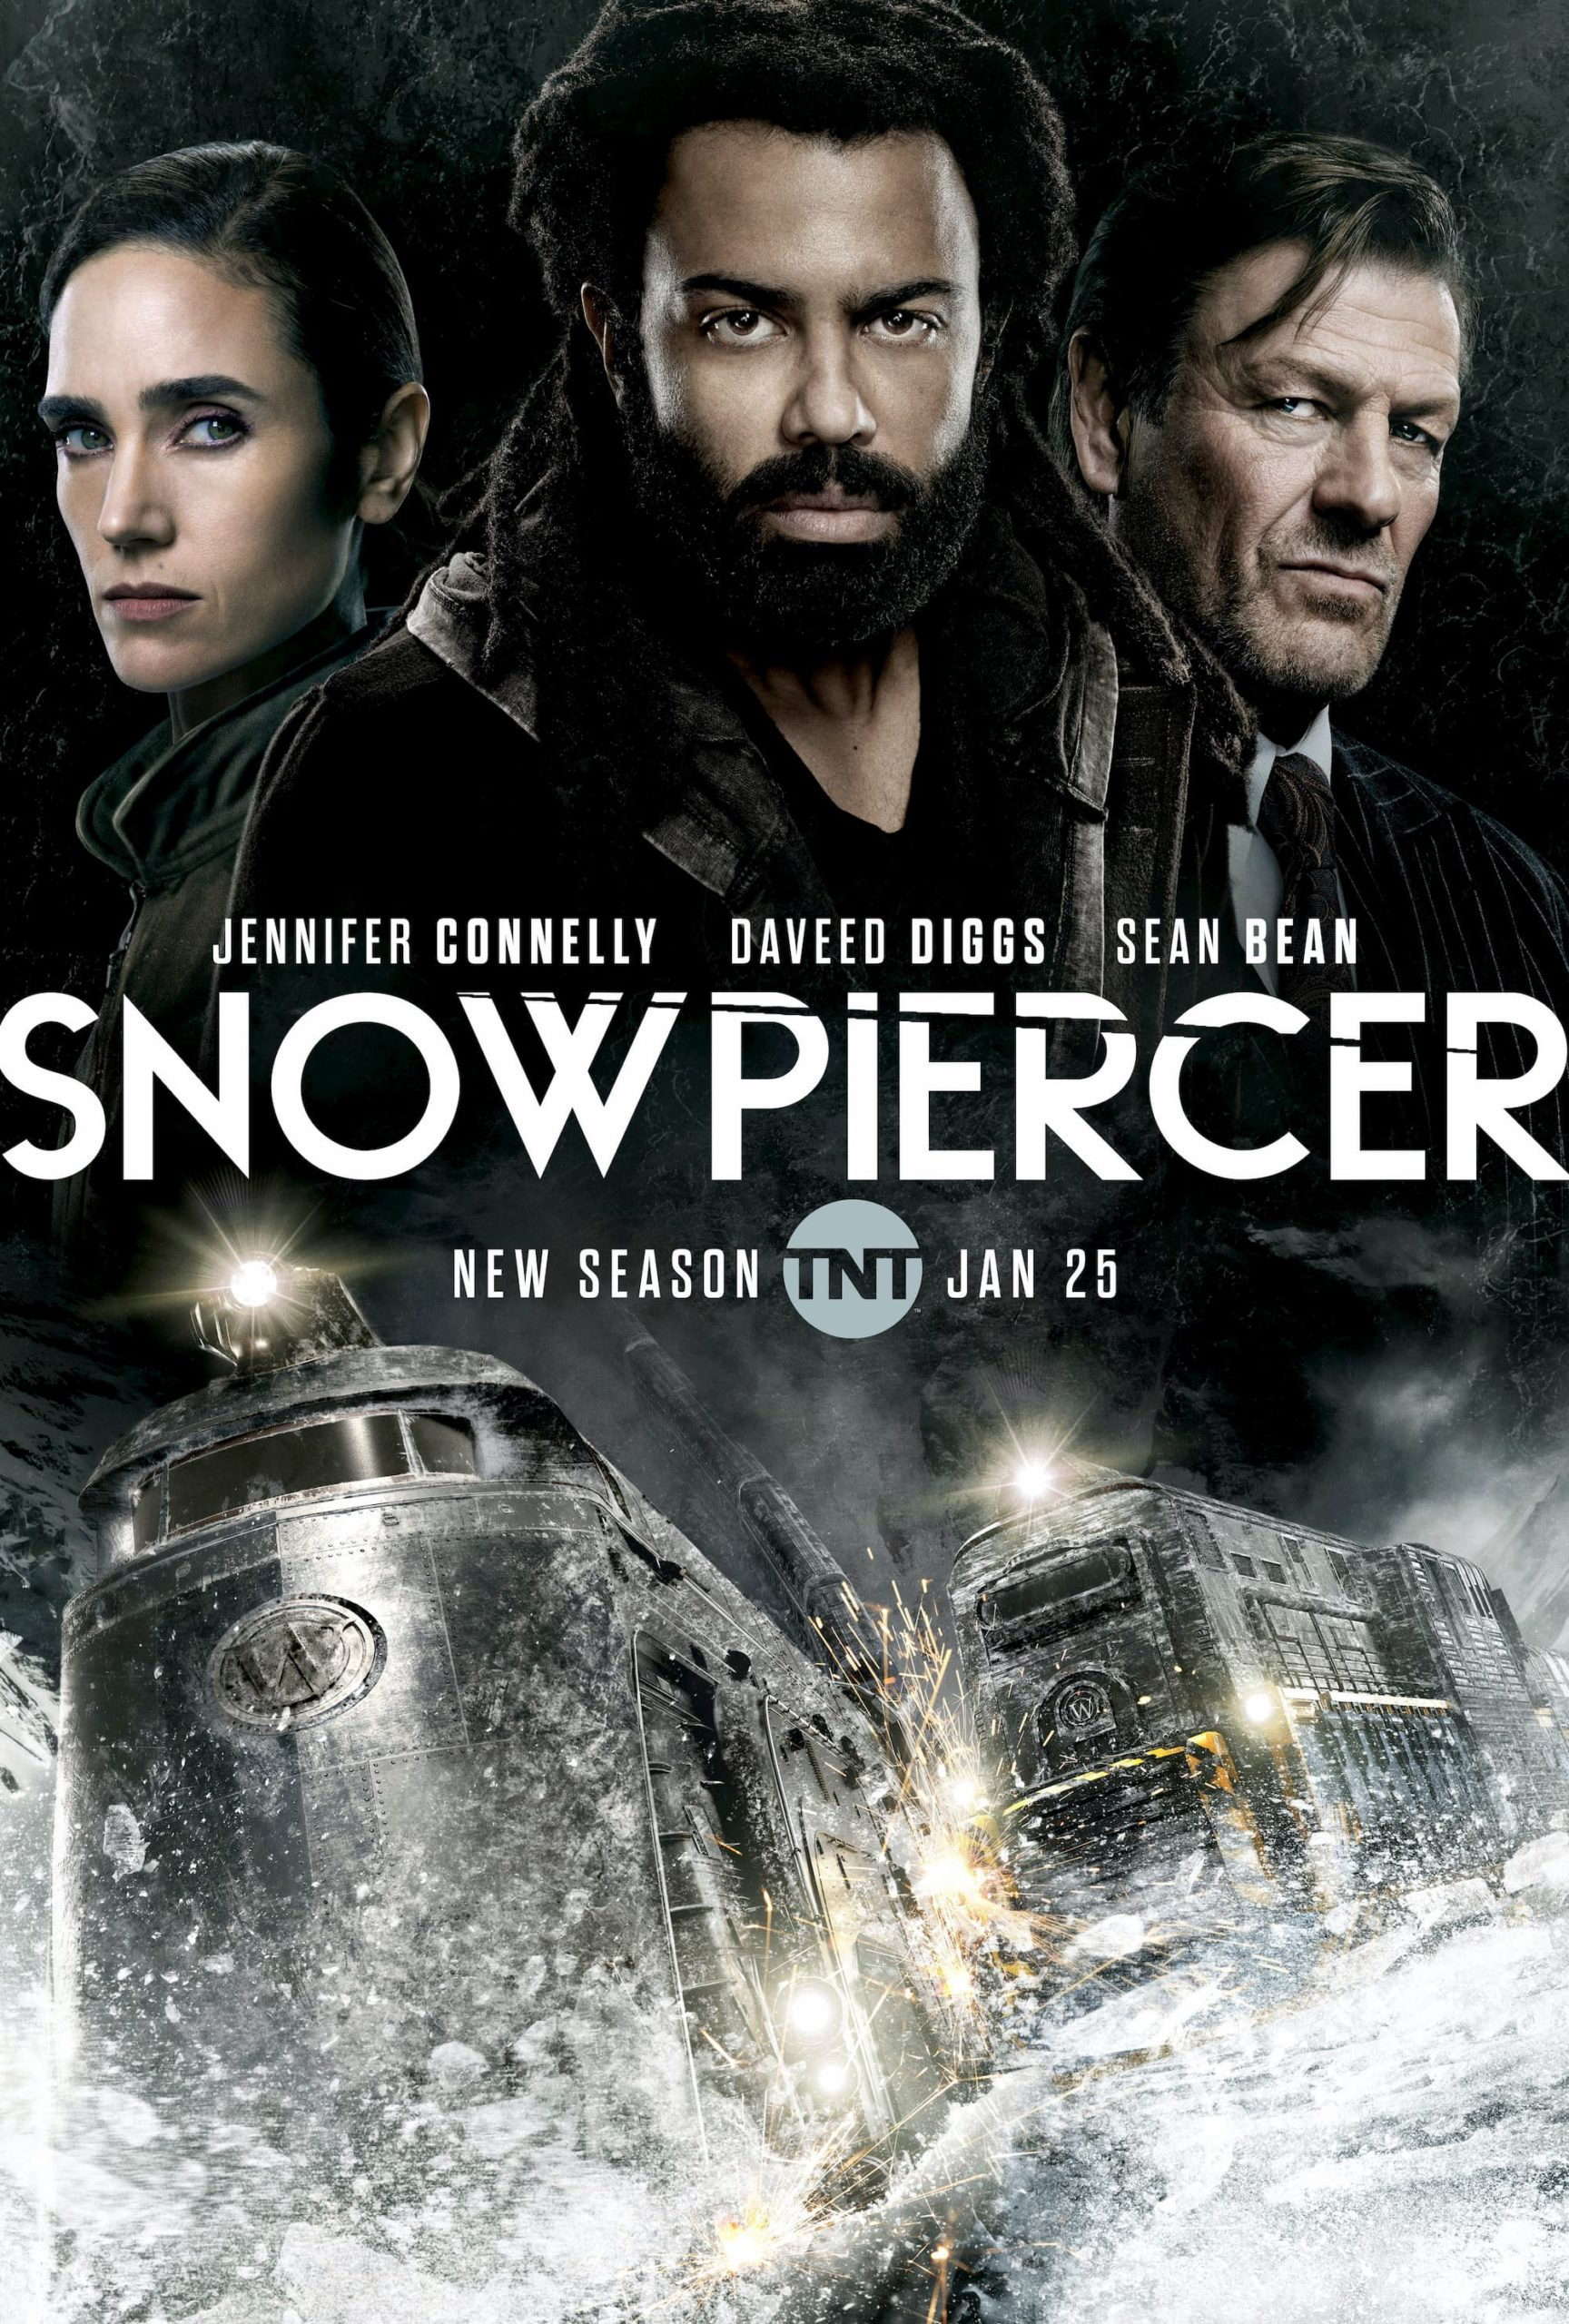 Snowpiercer Season 2 Spoiler-Free Review